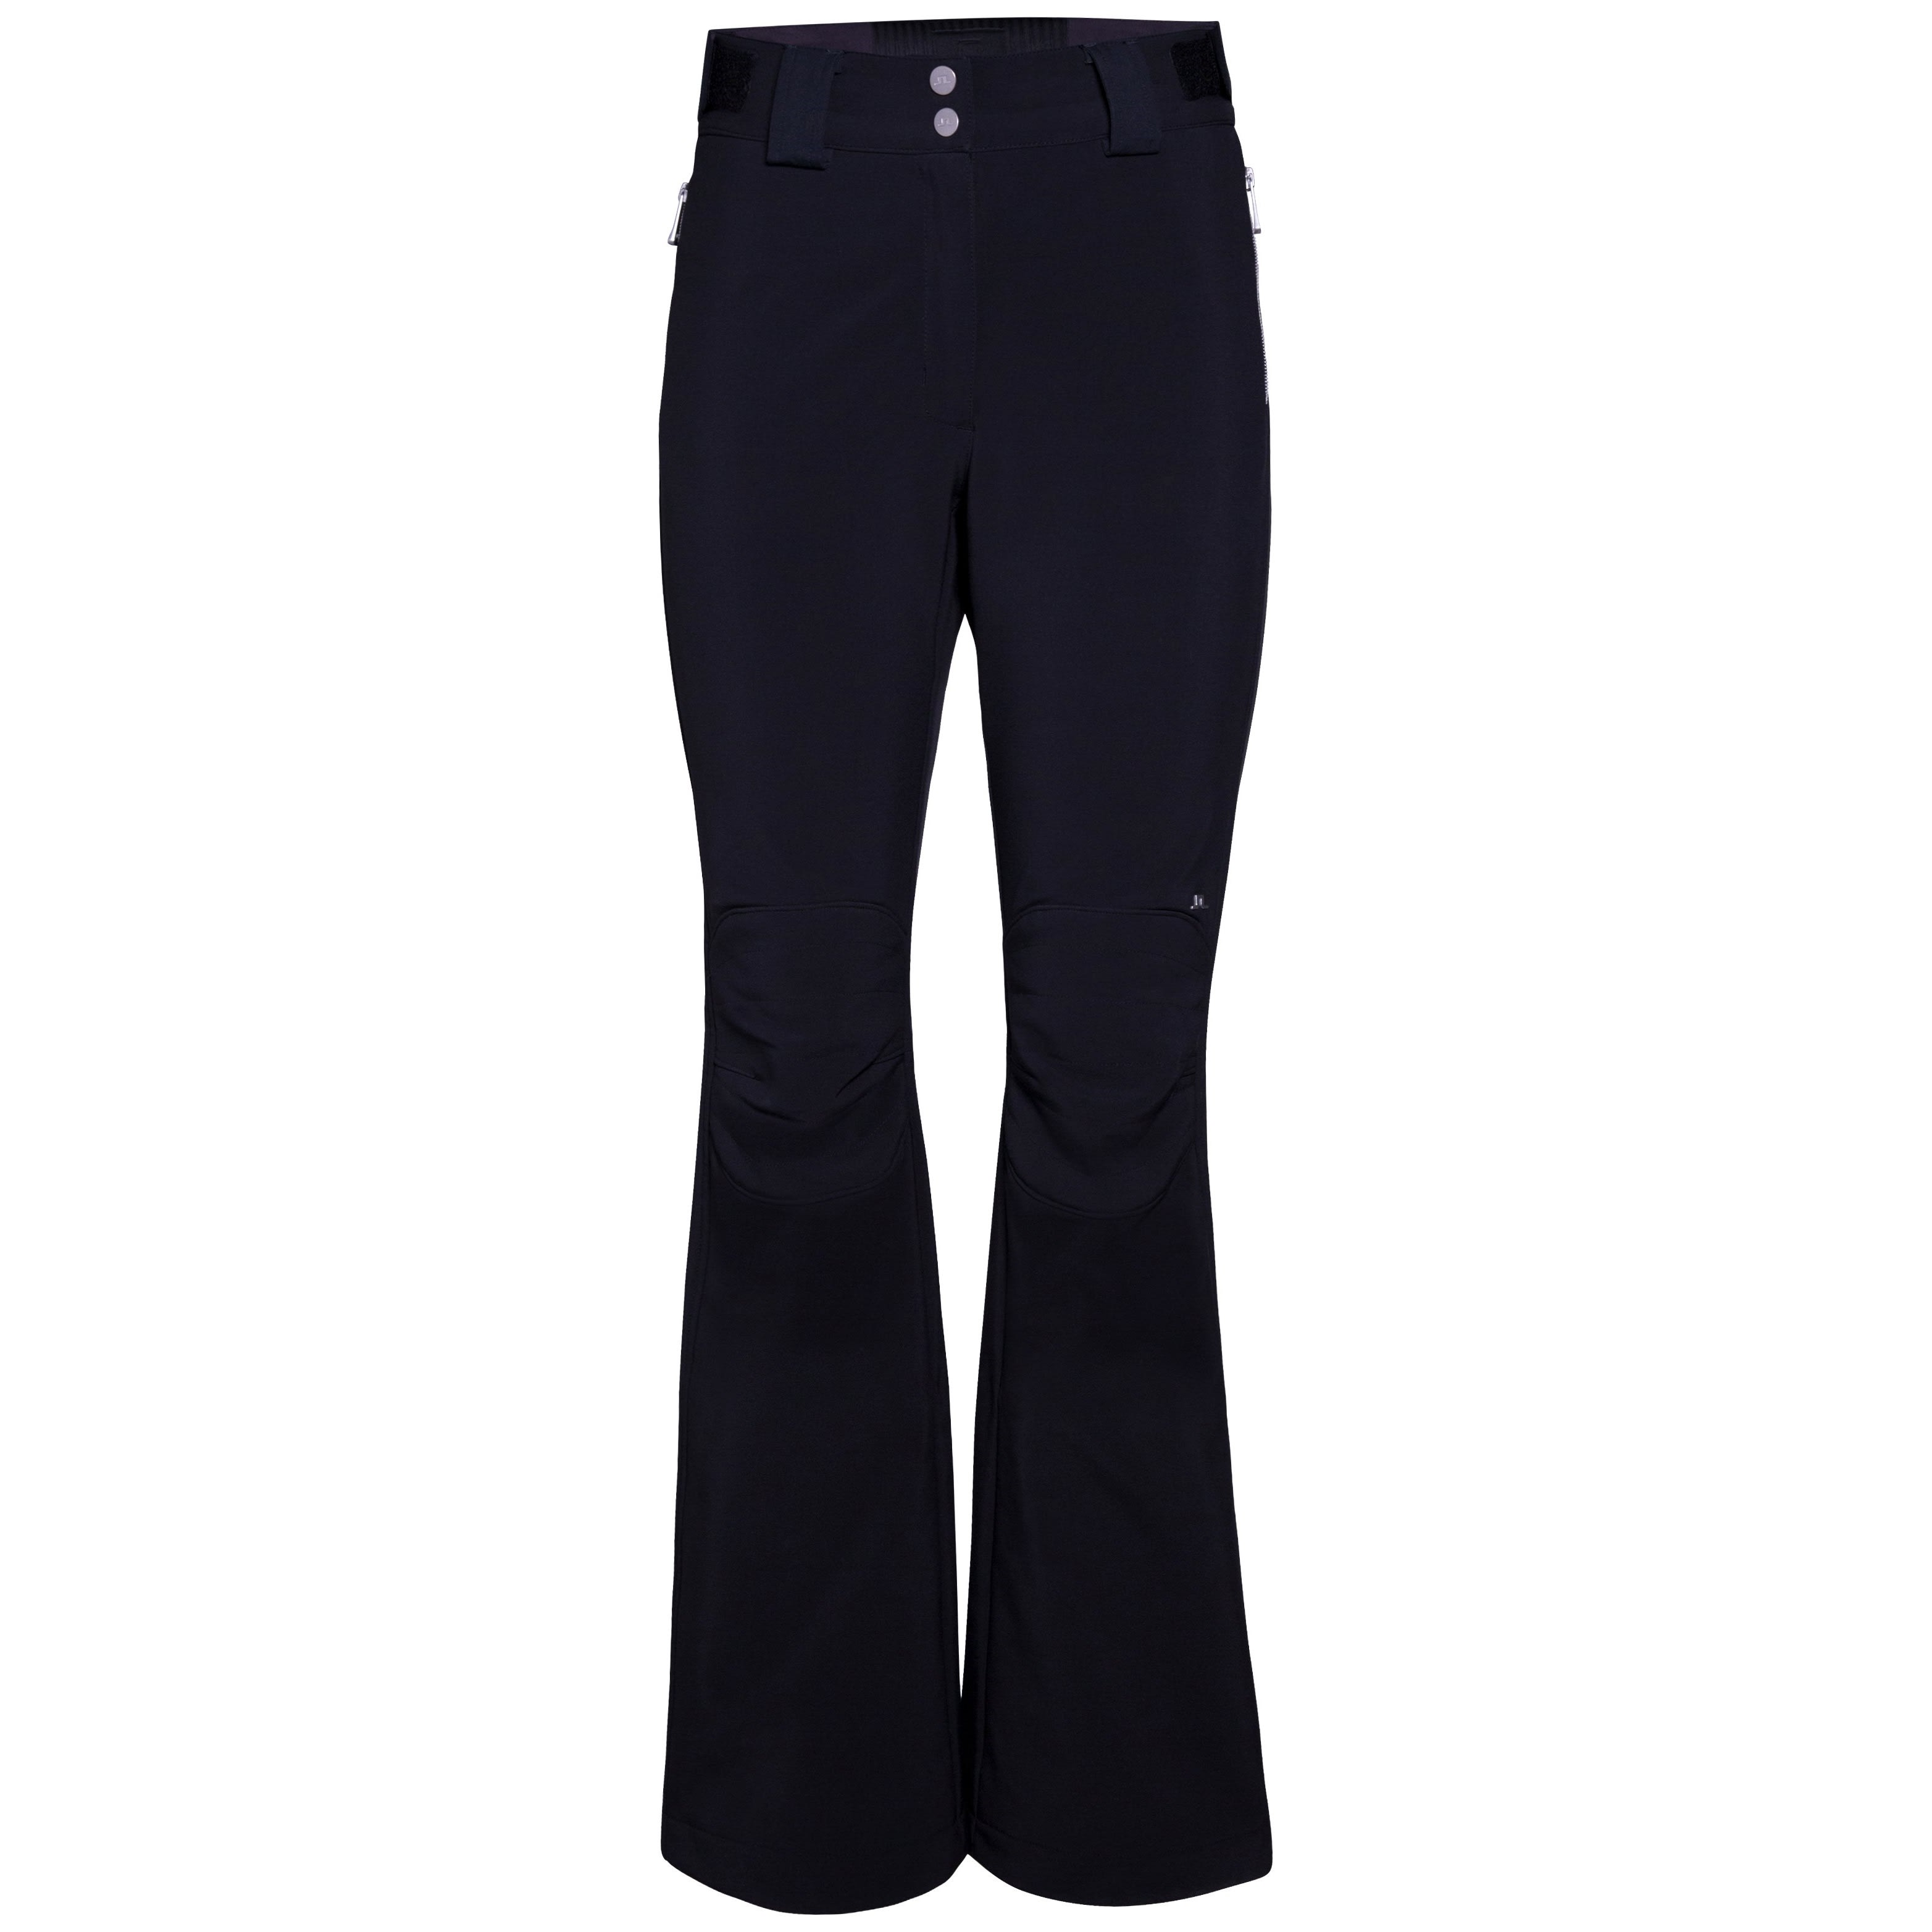 Women's Stanford JL Softshell Ski Pants